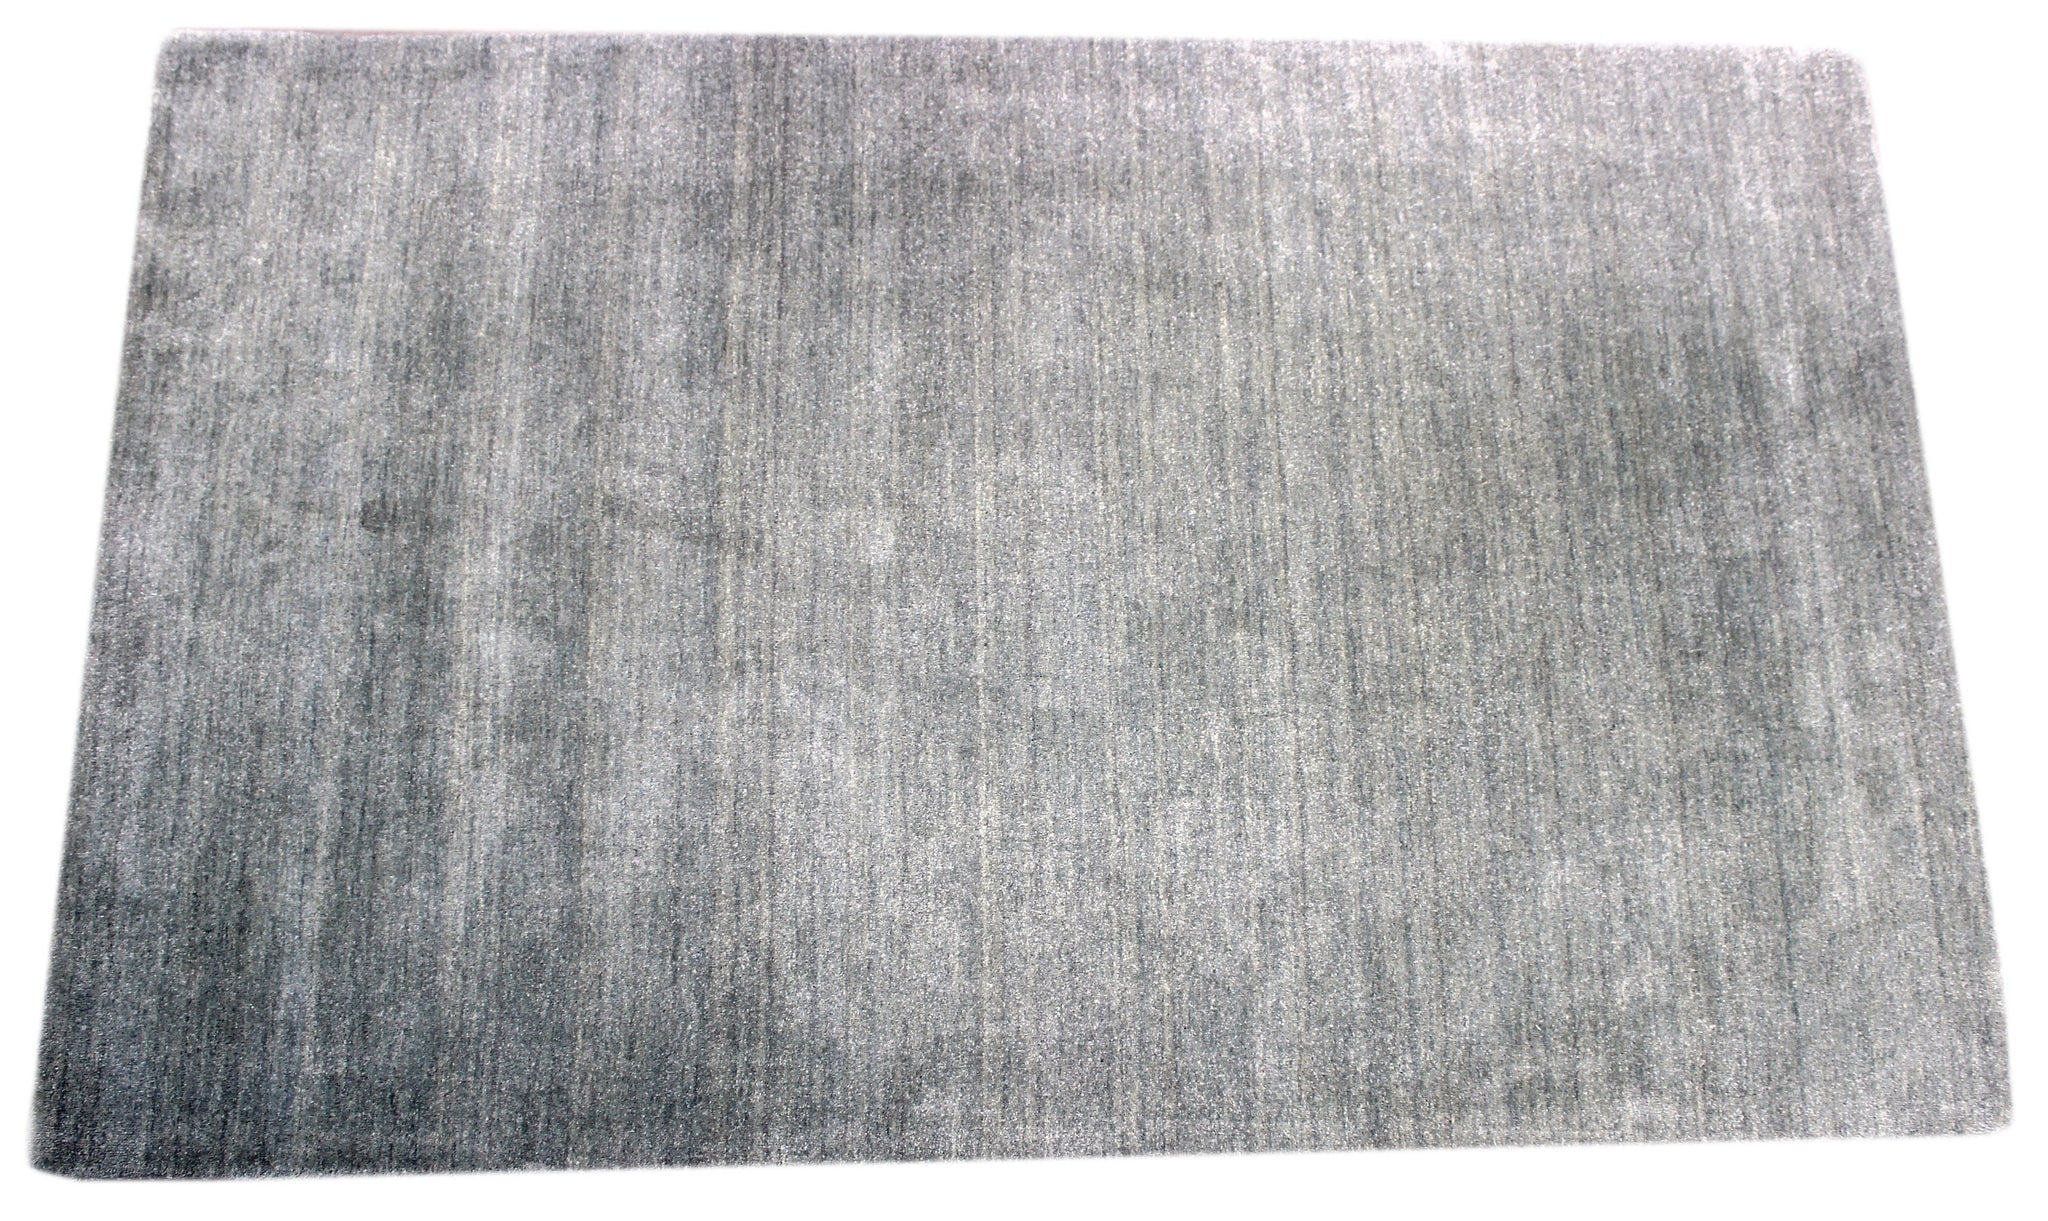 Silver Handmade Area rug by verve hand-made